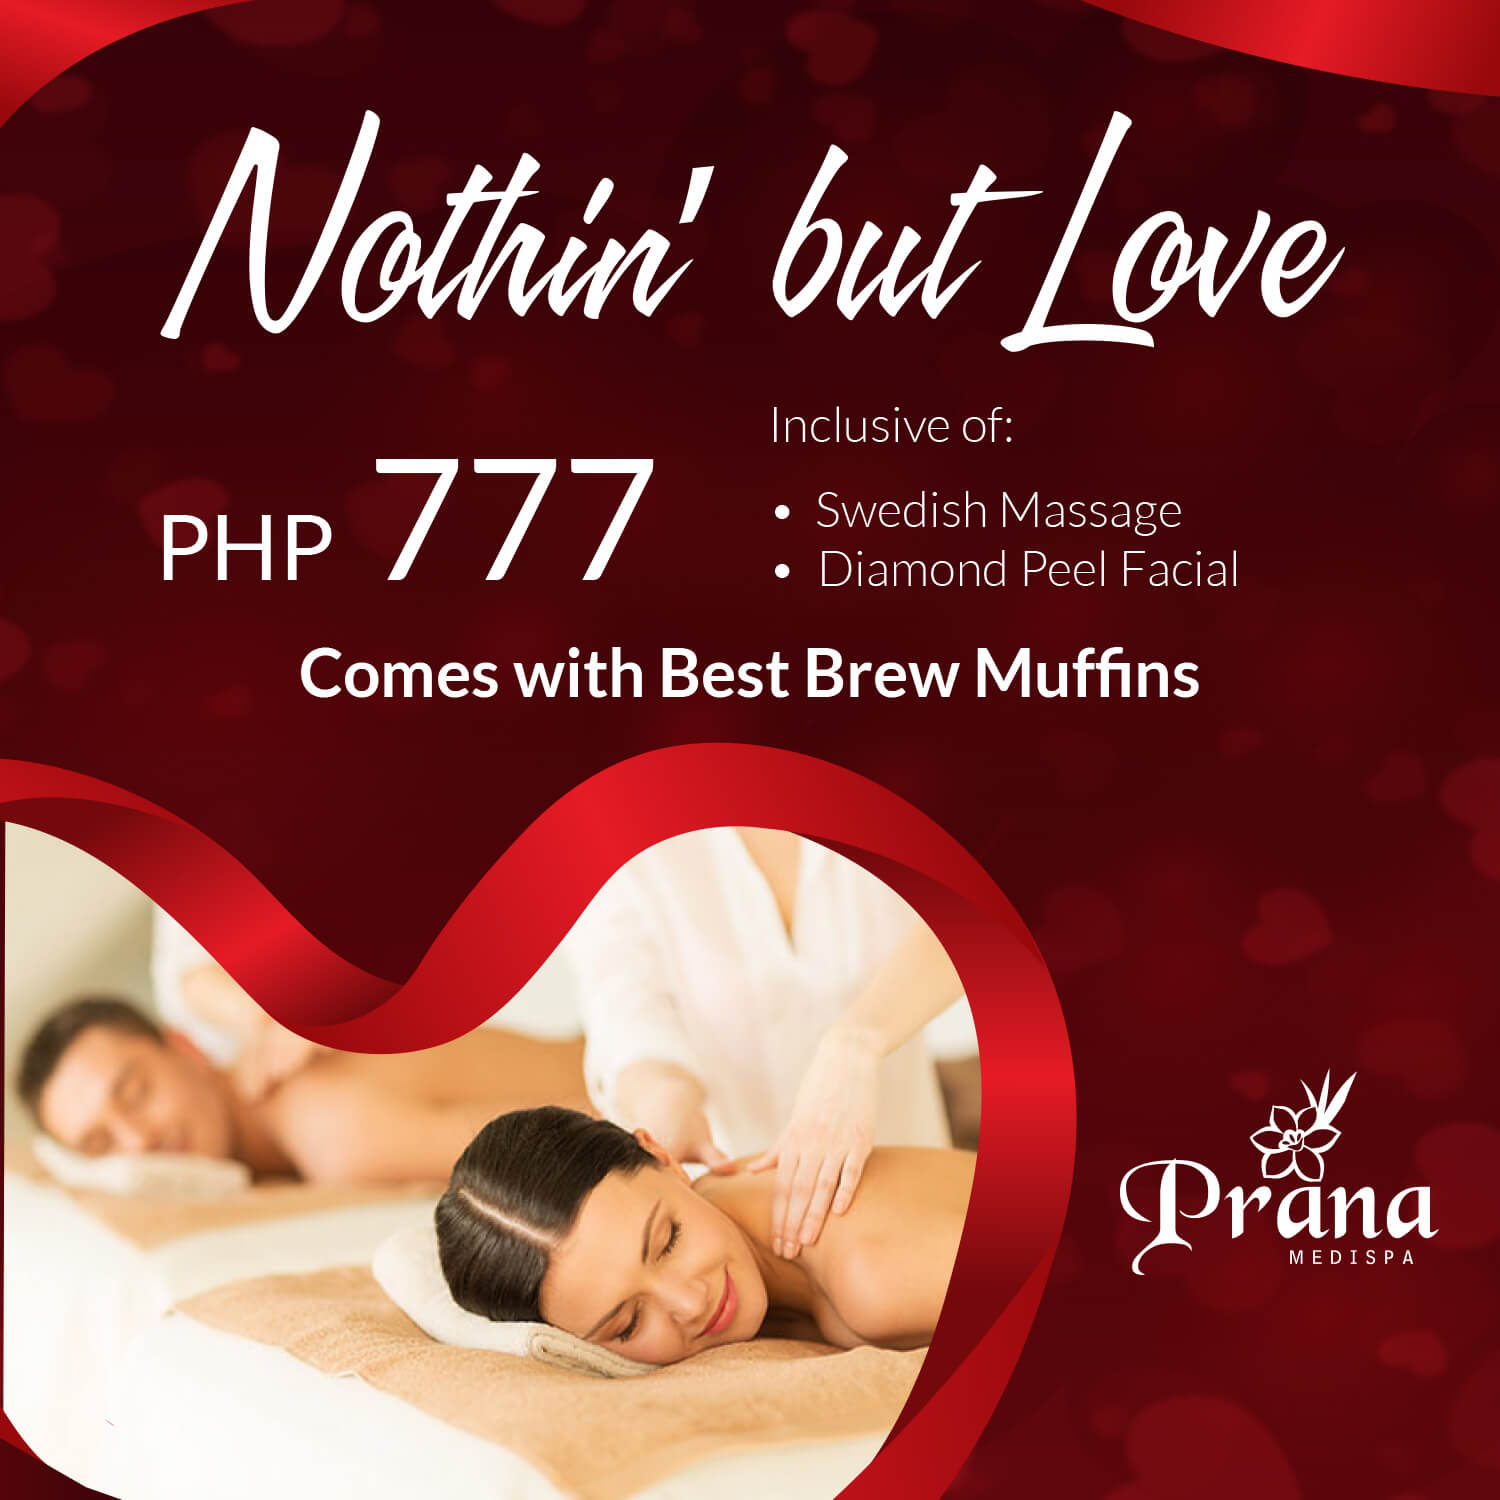 Prana Medispa February Promo: Nothin' but Love